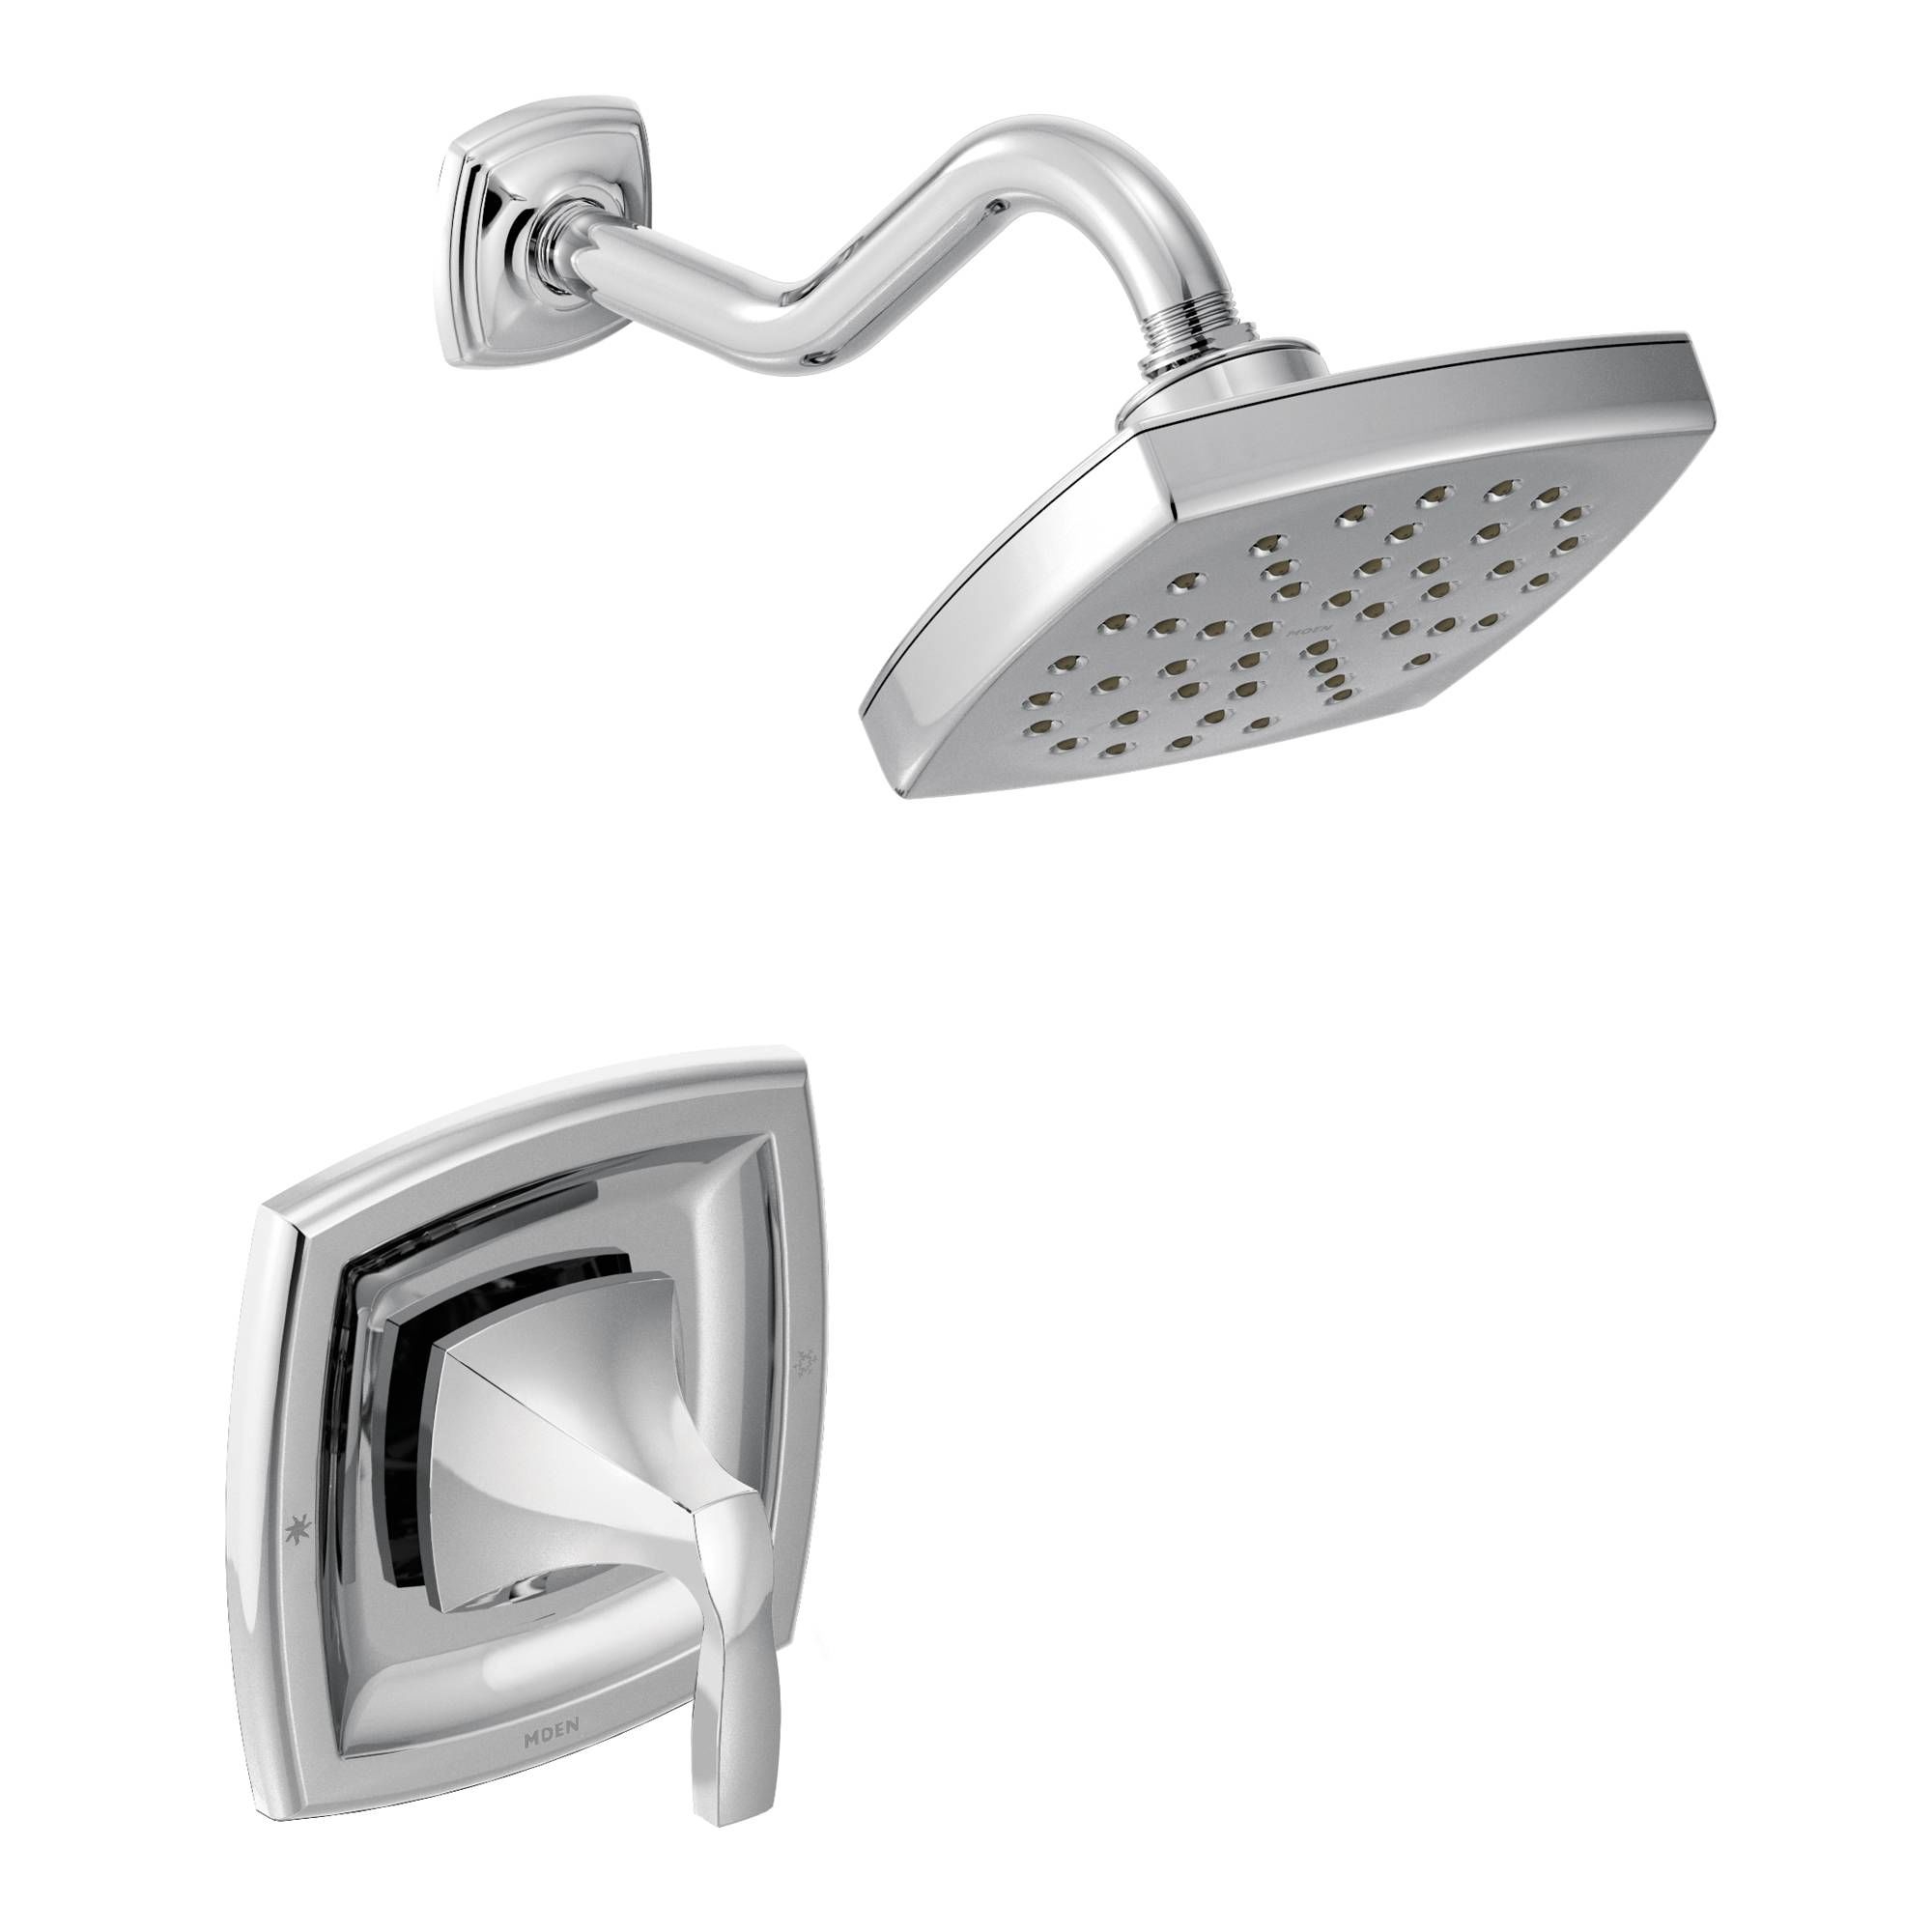 moen valve faucets com asp detail shower lg one chrome efaucets kingsley faucet handle only